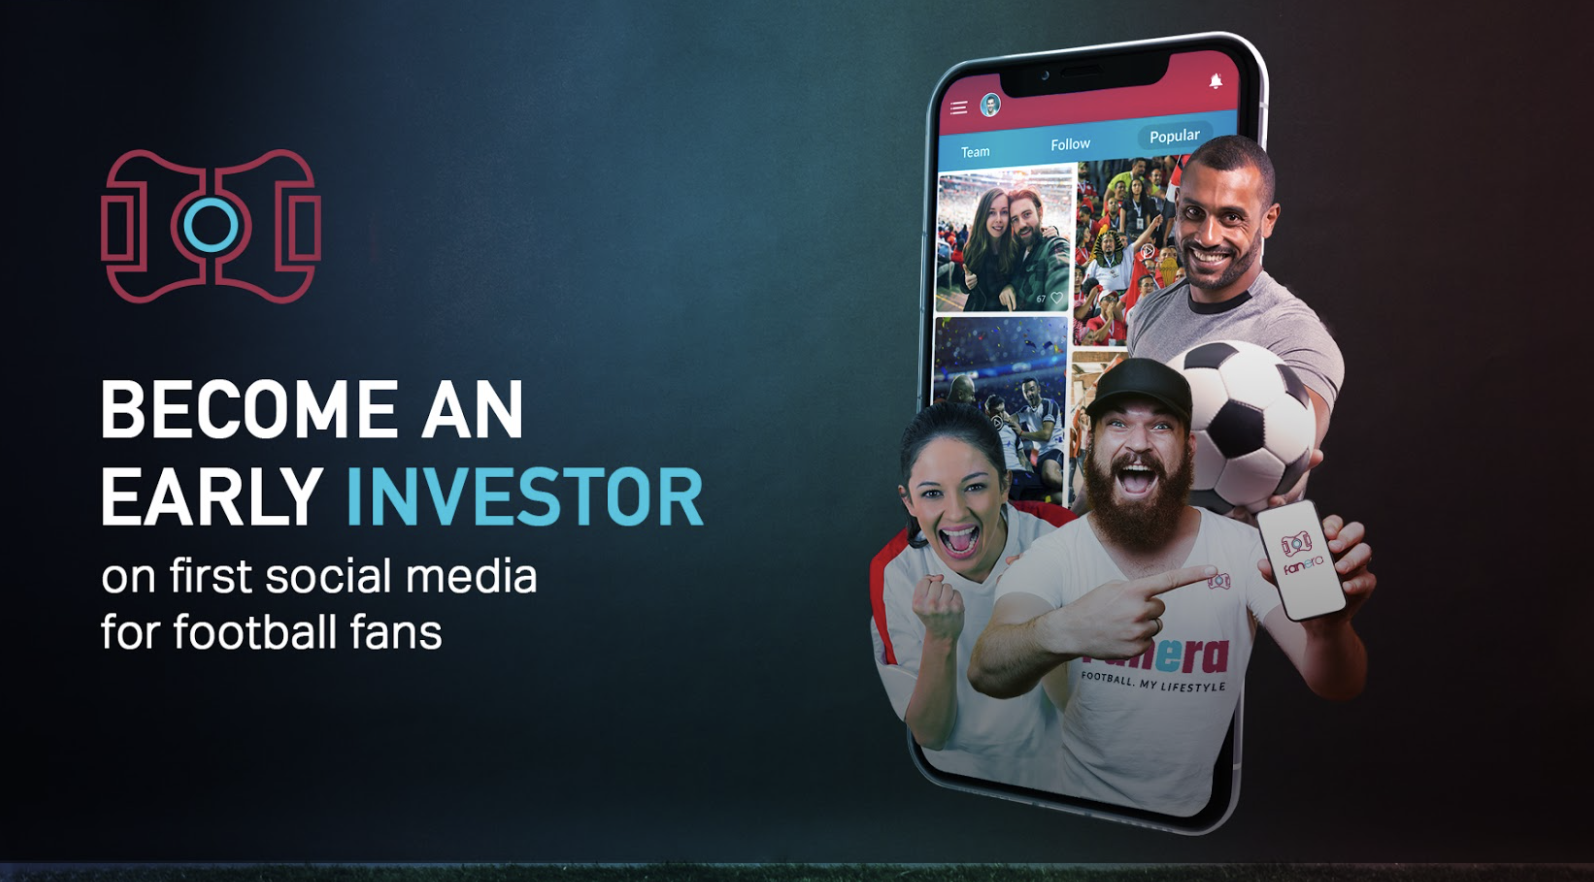 Fanera Launches Equity Crowdfunding Campaign On WeFunder To Unite Football Fans